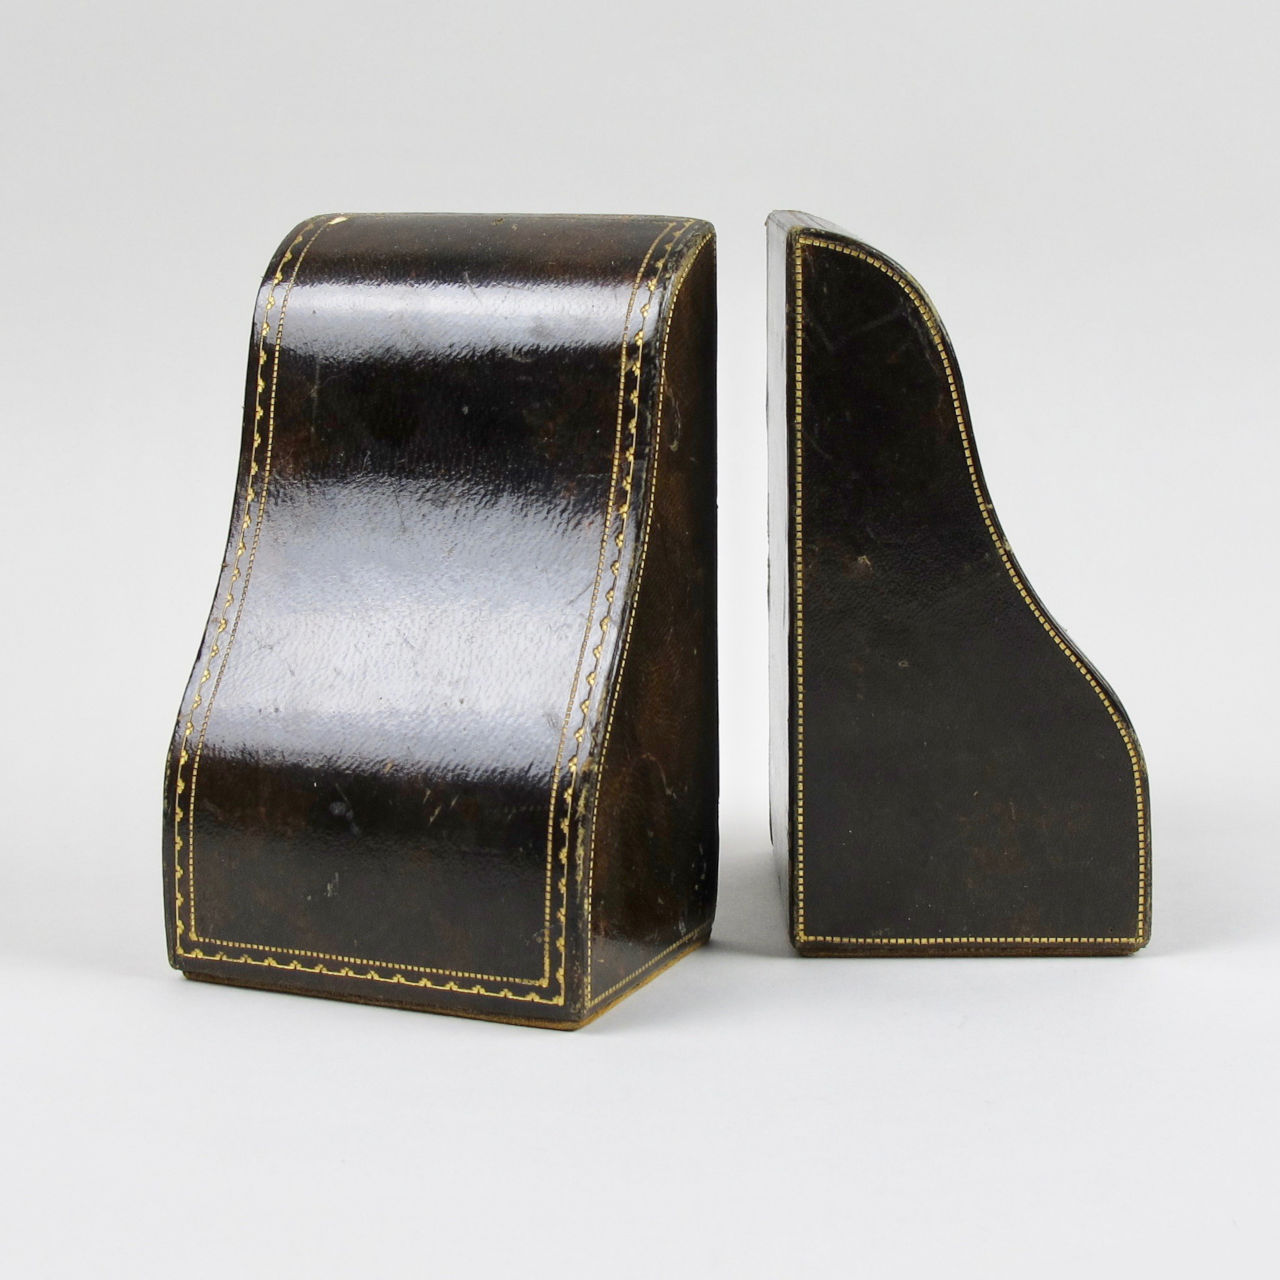 Pair of Moroccan Leather Bound Book Ends